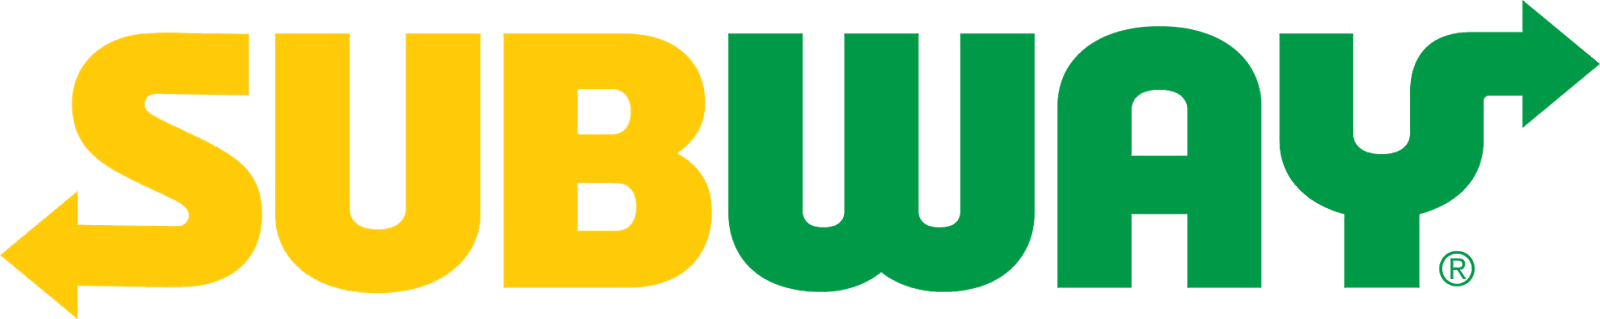 subway-launches-refreshed-logo-png-12